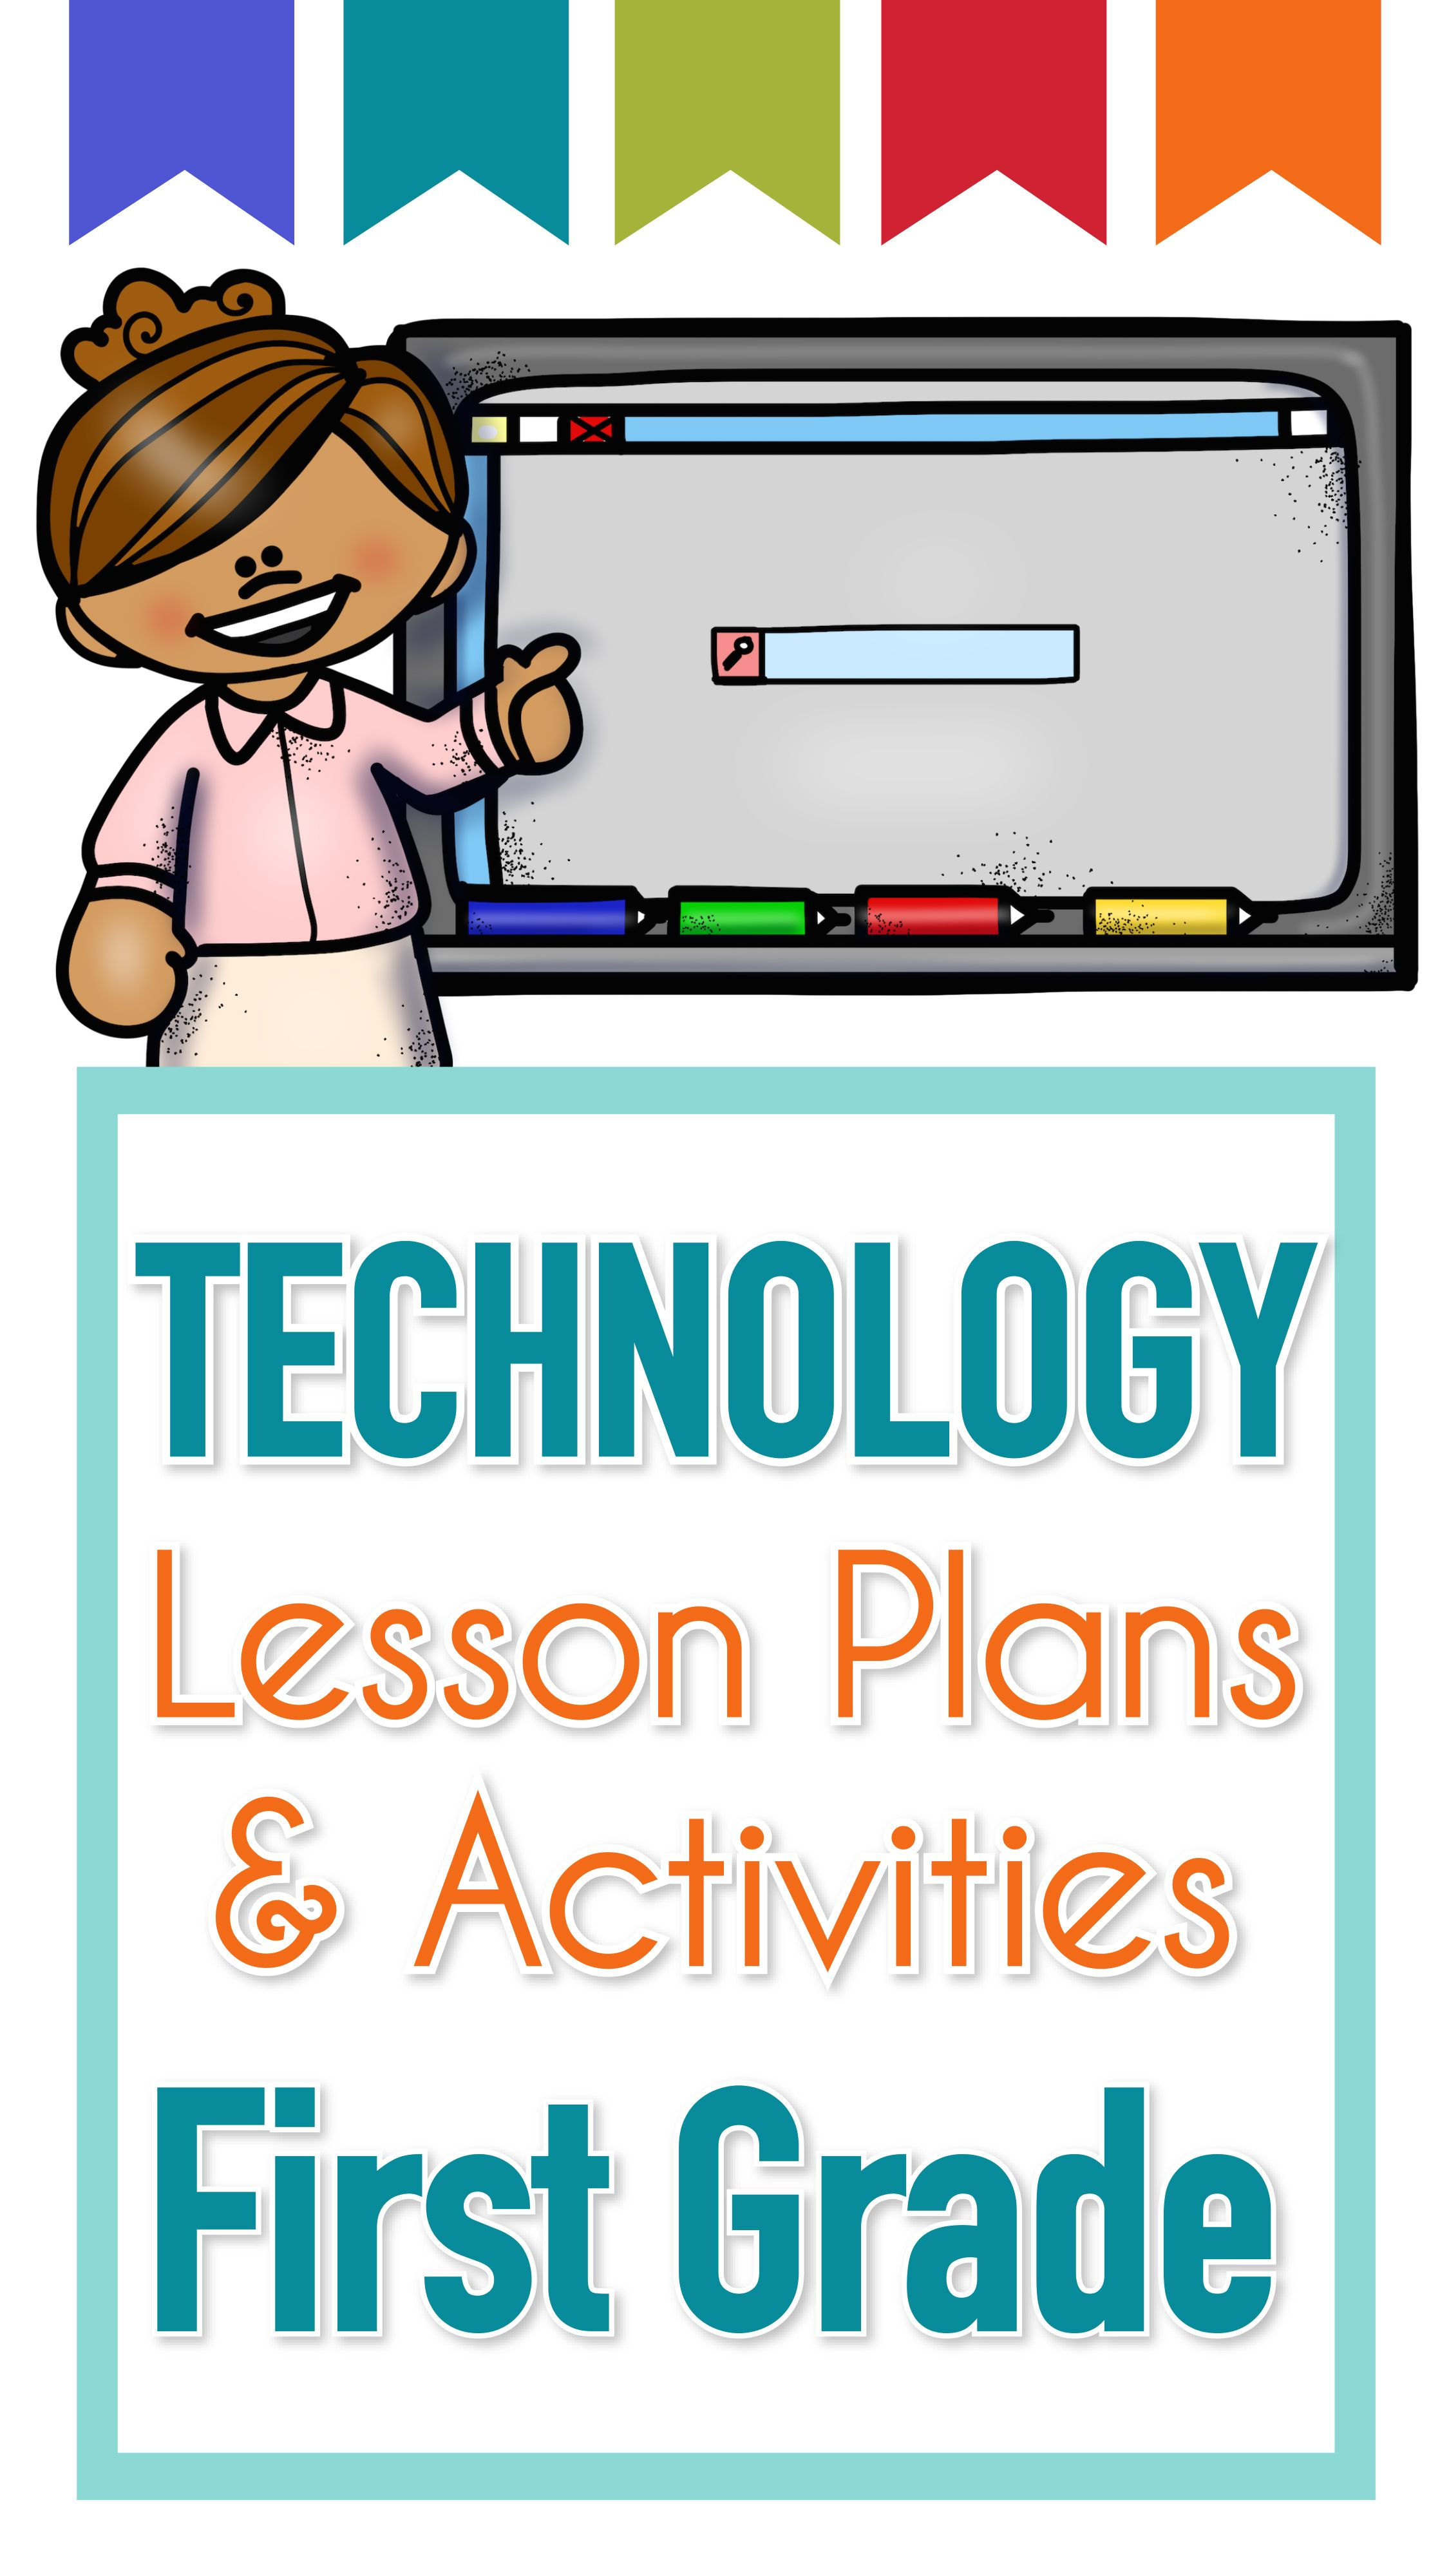 40 1st Grade Technology Lesson Plans And Activities For